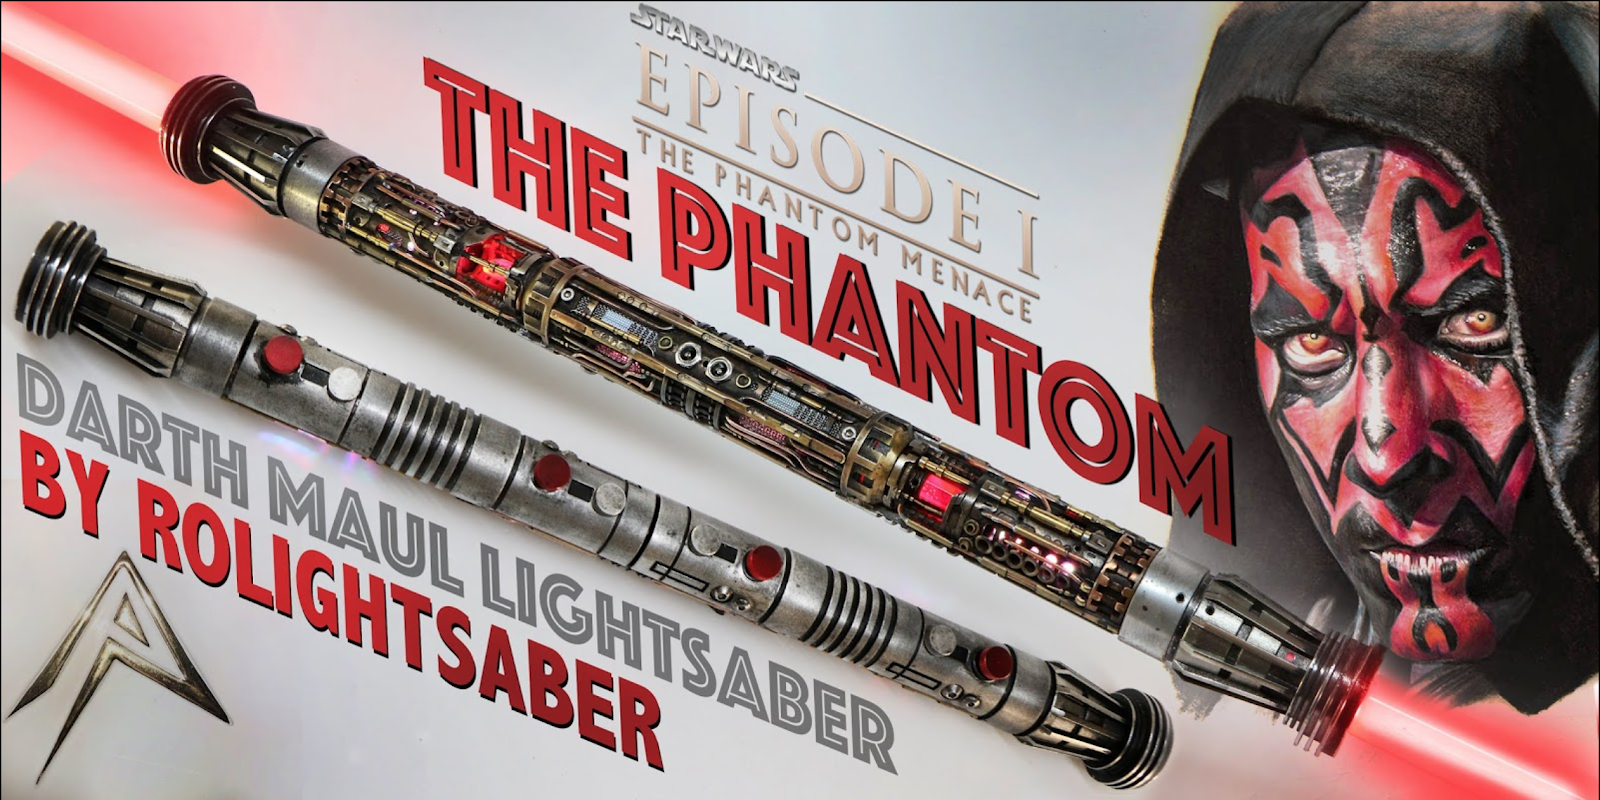 The Phantom: Darth Maul Lightsaber